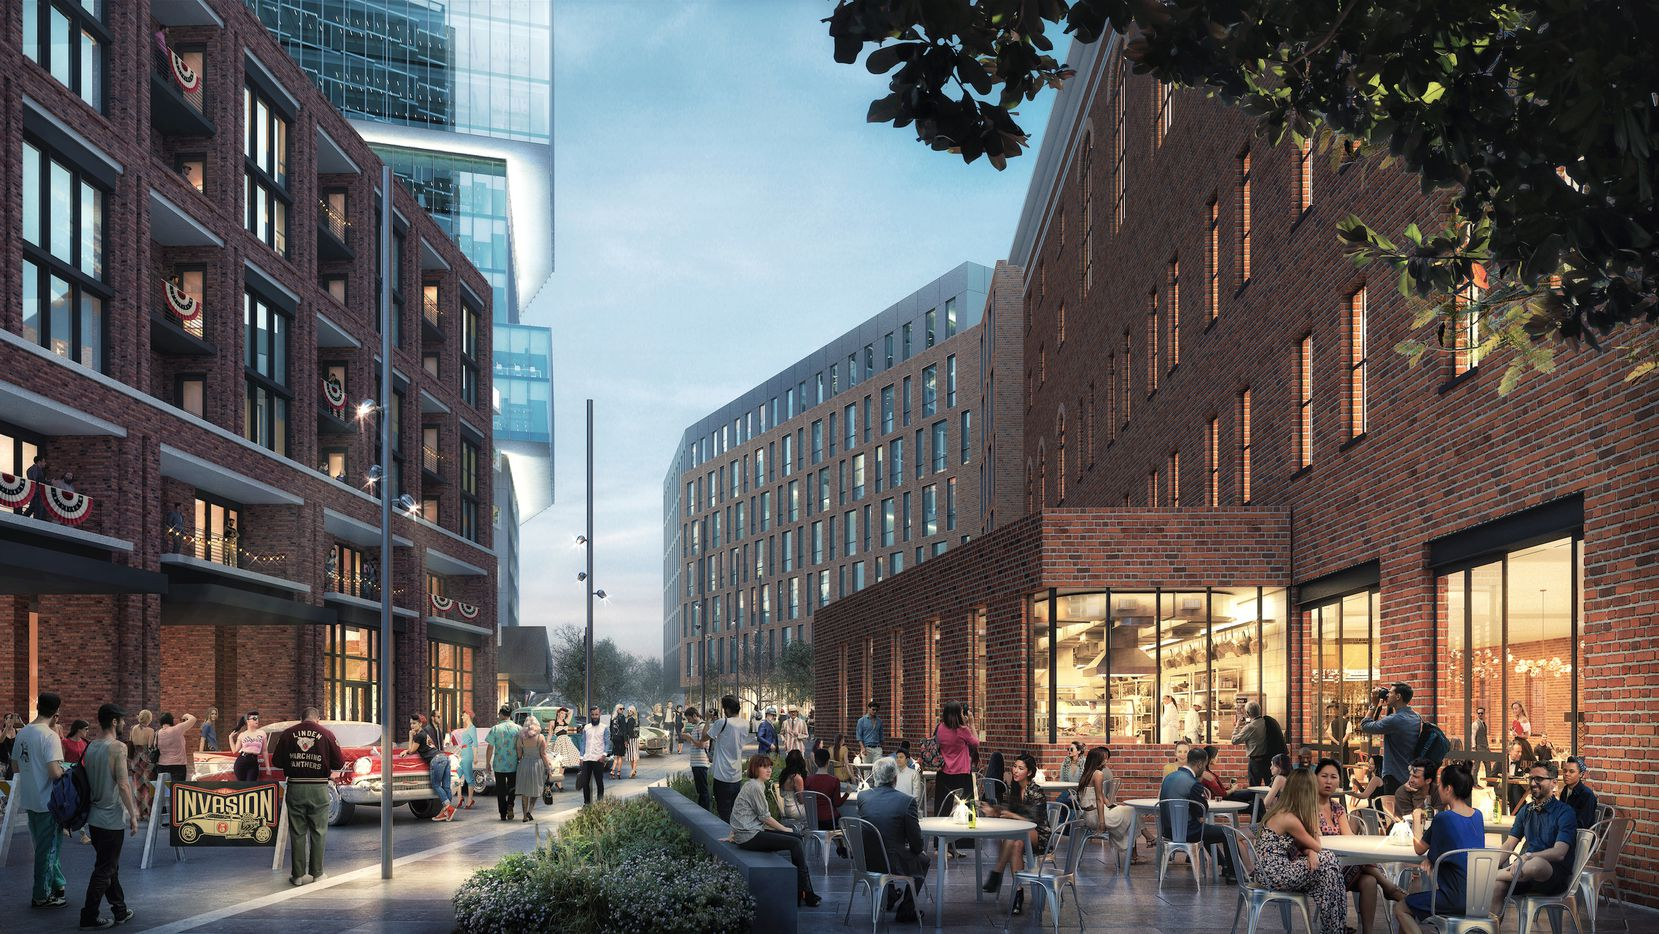 A new internal street at the Epic project will add retail and restaurant space.